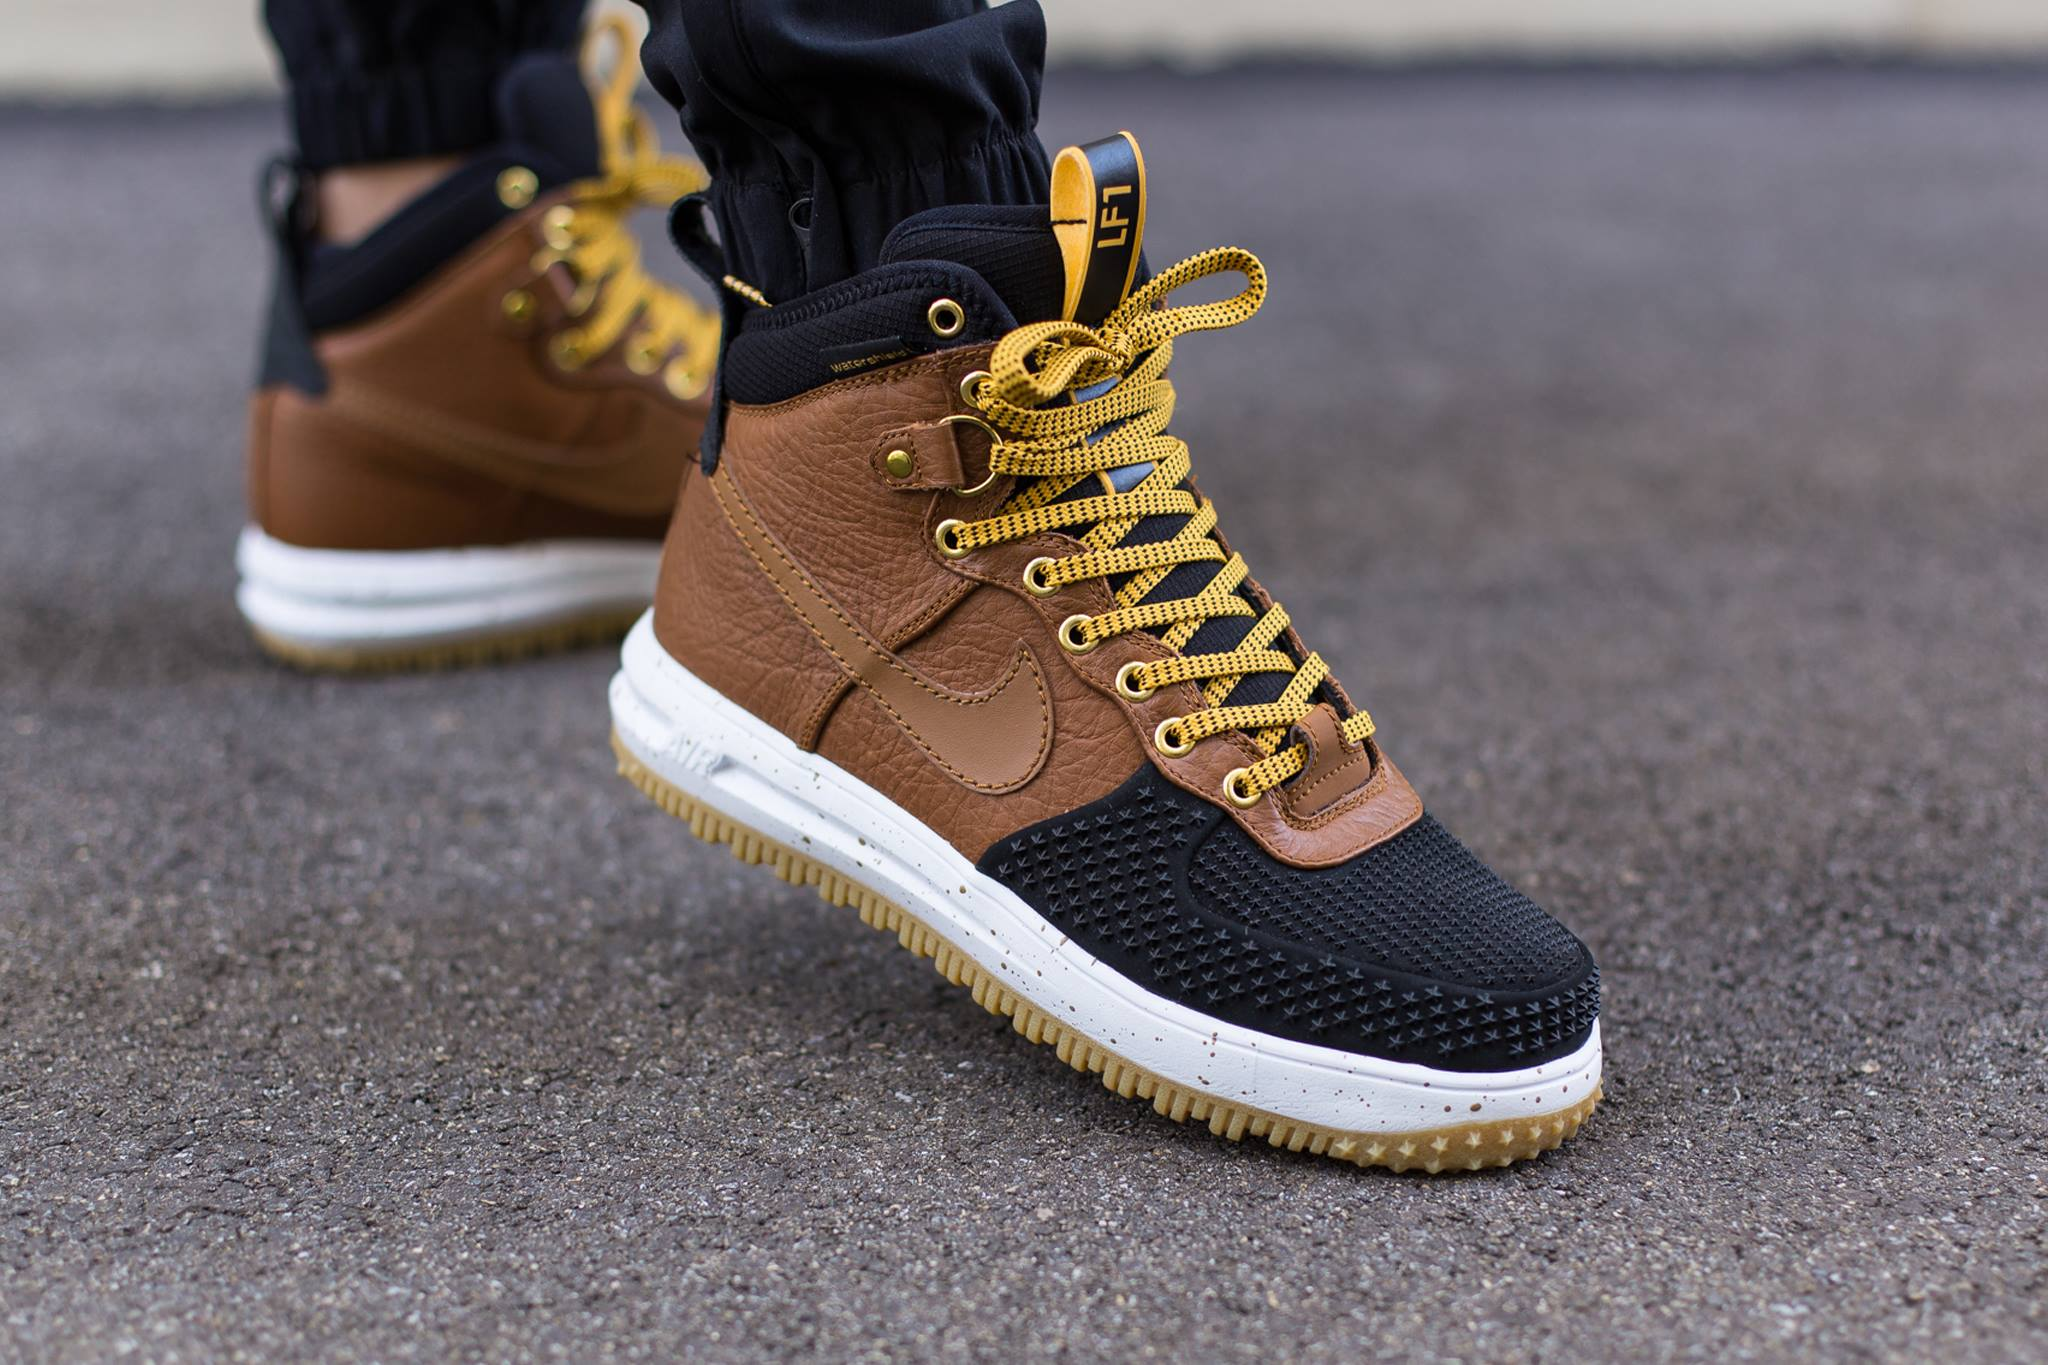 Nike Lunar Force 1 Duckboot Gold DartBlack Kicks Links